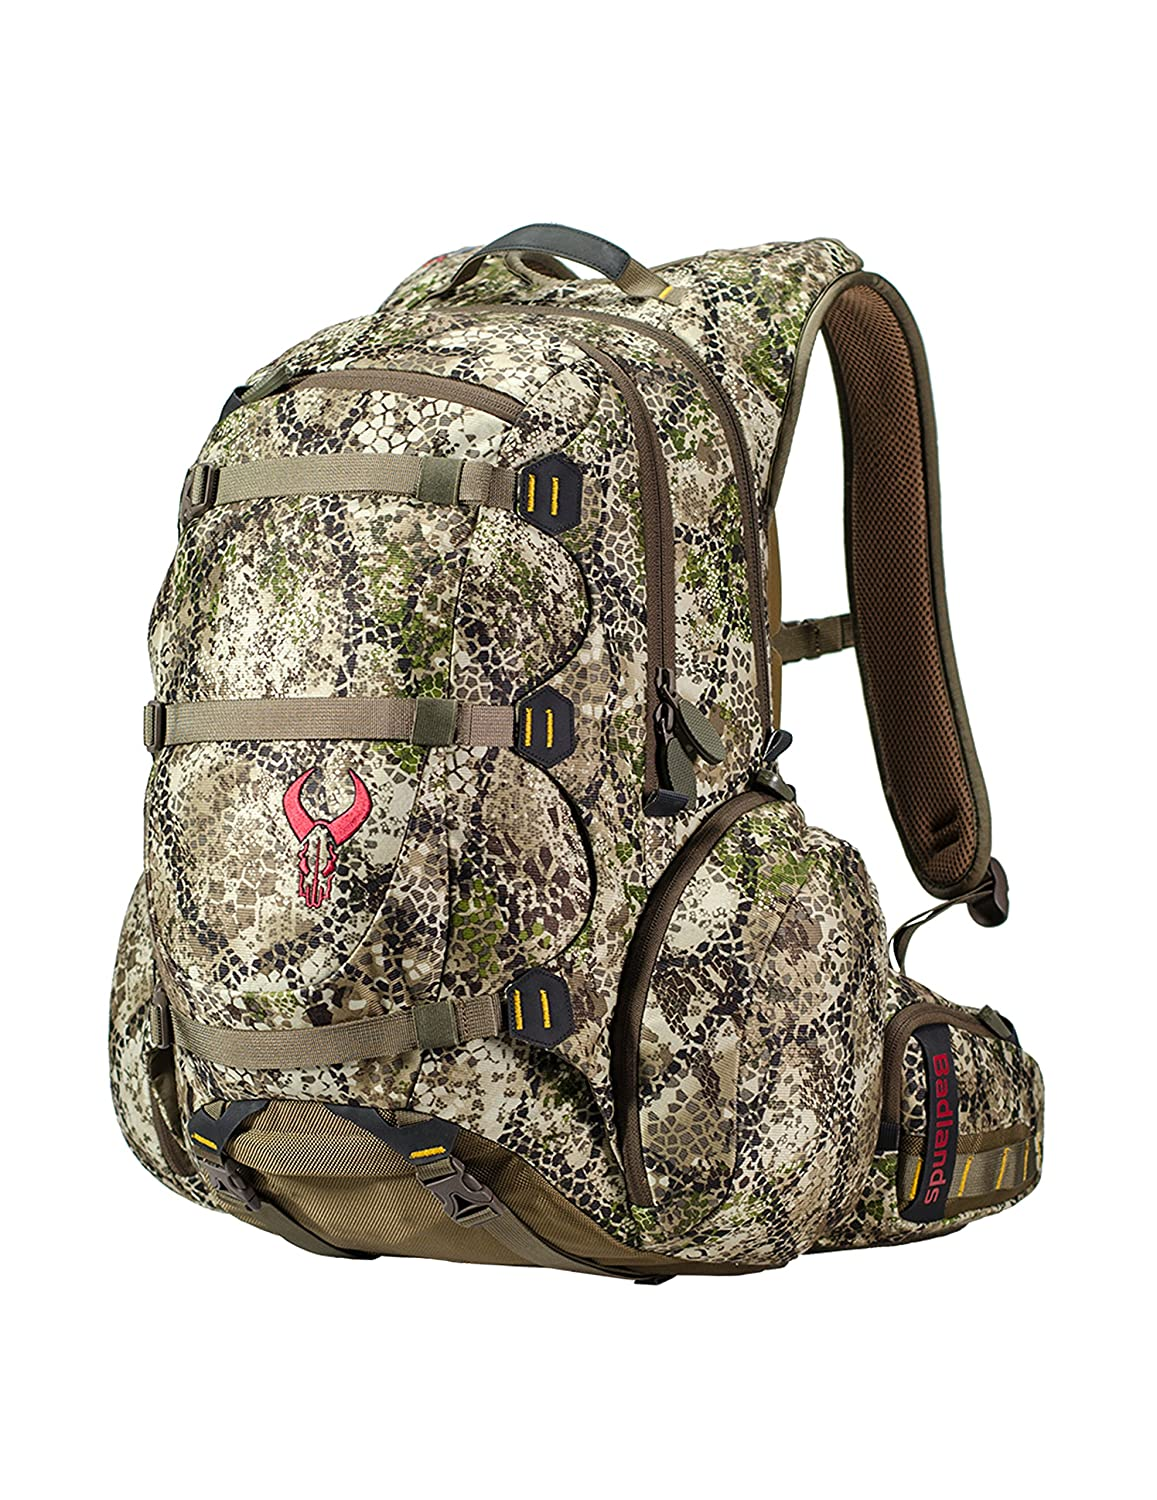 Badlands Superday Camouflage Hunting Backpack review